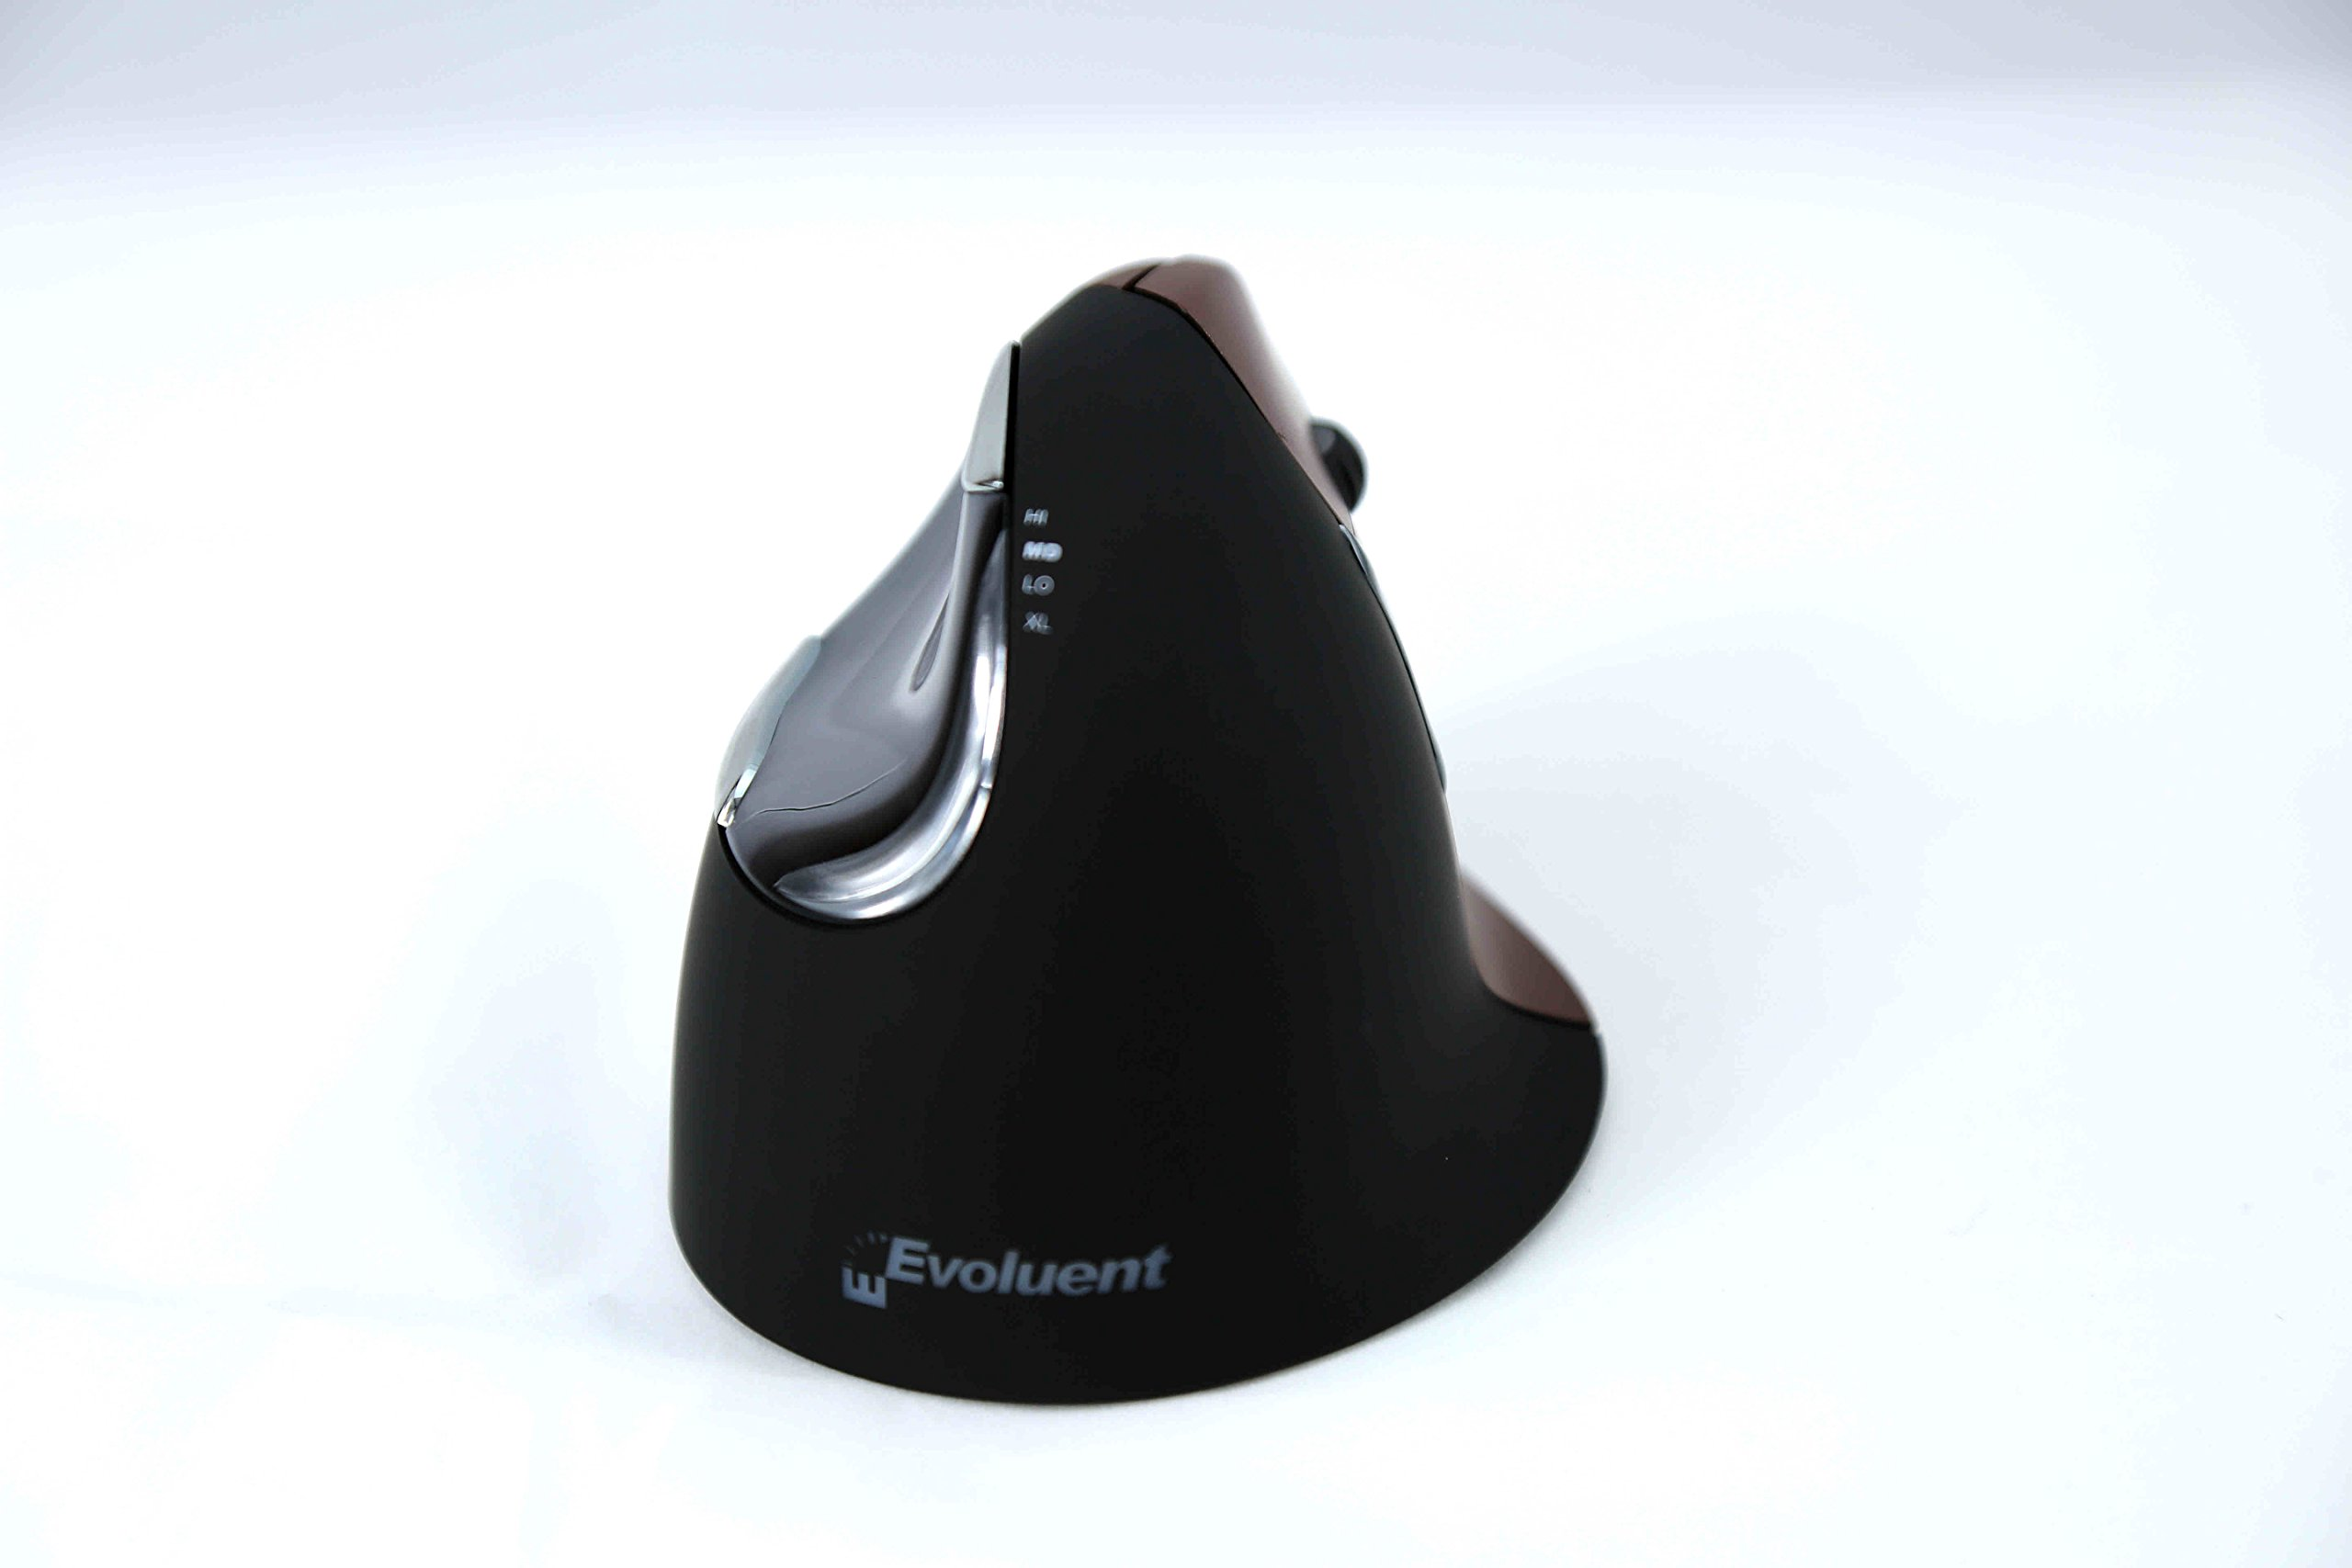 Evoluent - Ergonomical Wireless VerticalMouse & Jestik Microfiber Cloth - Right Handed - Small Size - Brown & Black by Evoluent (Image #2)